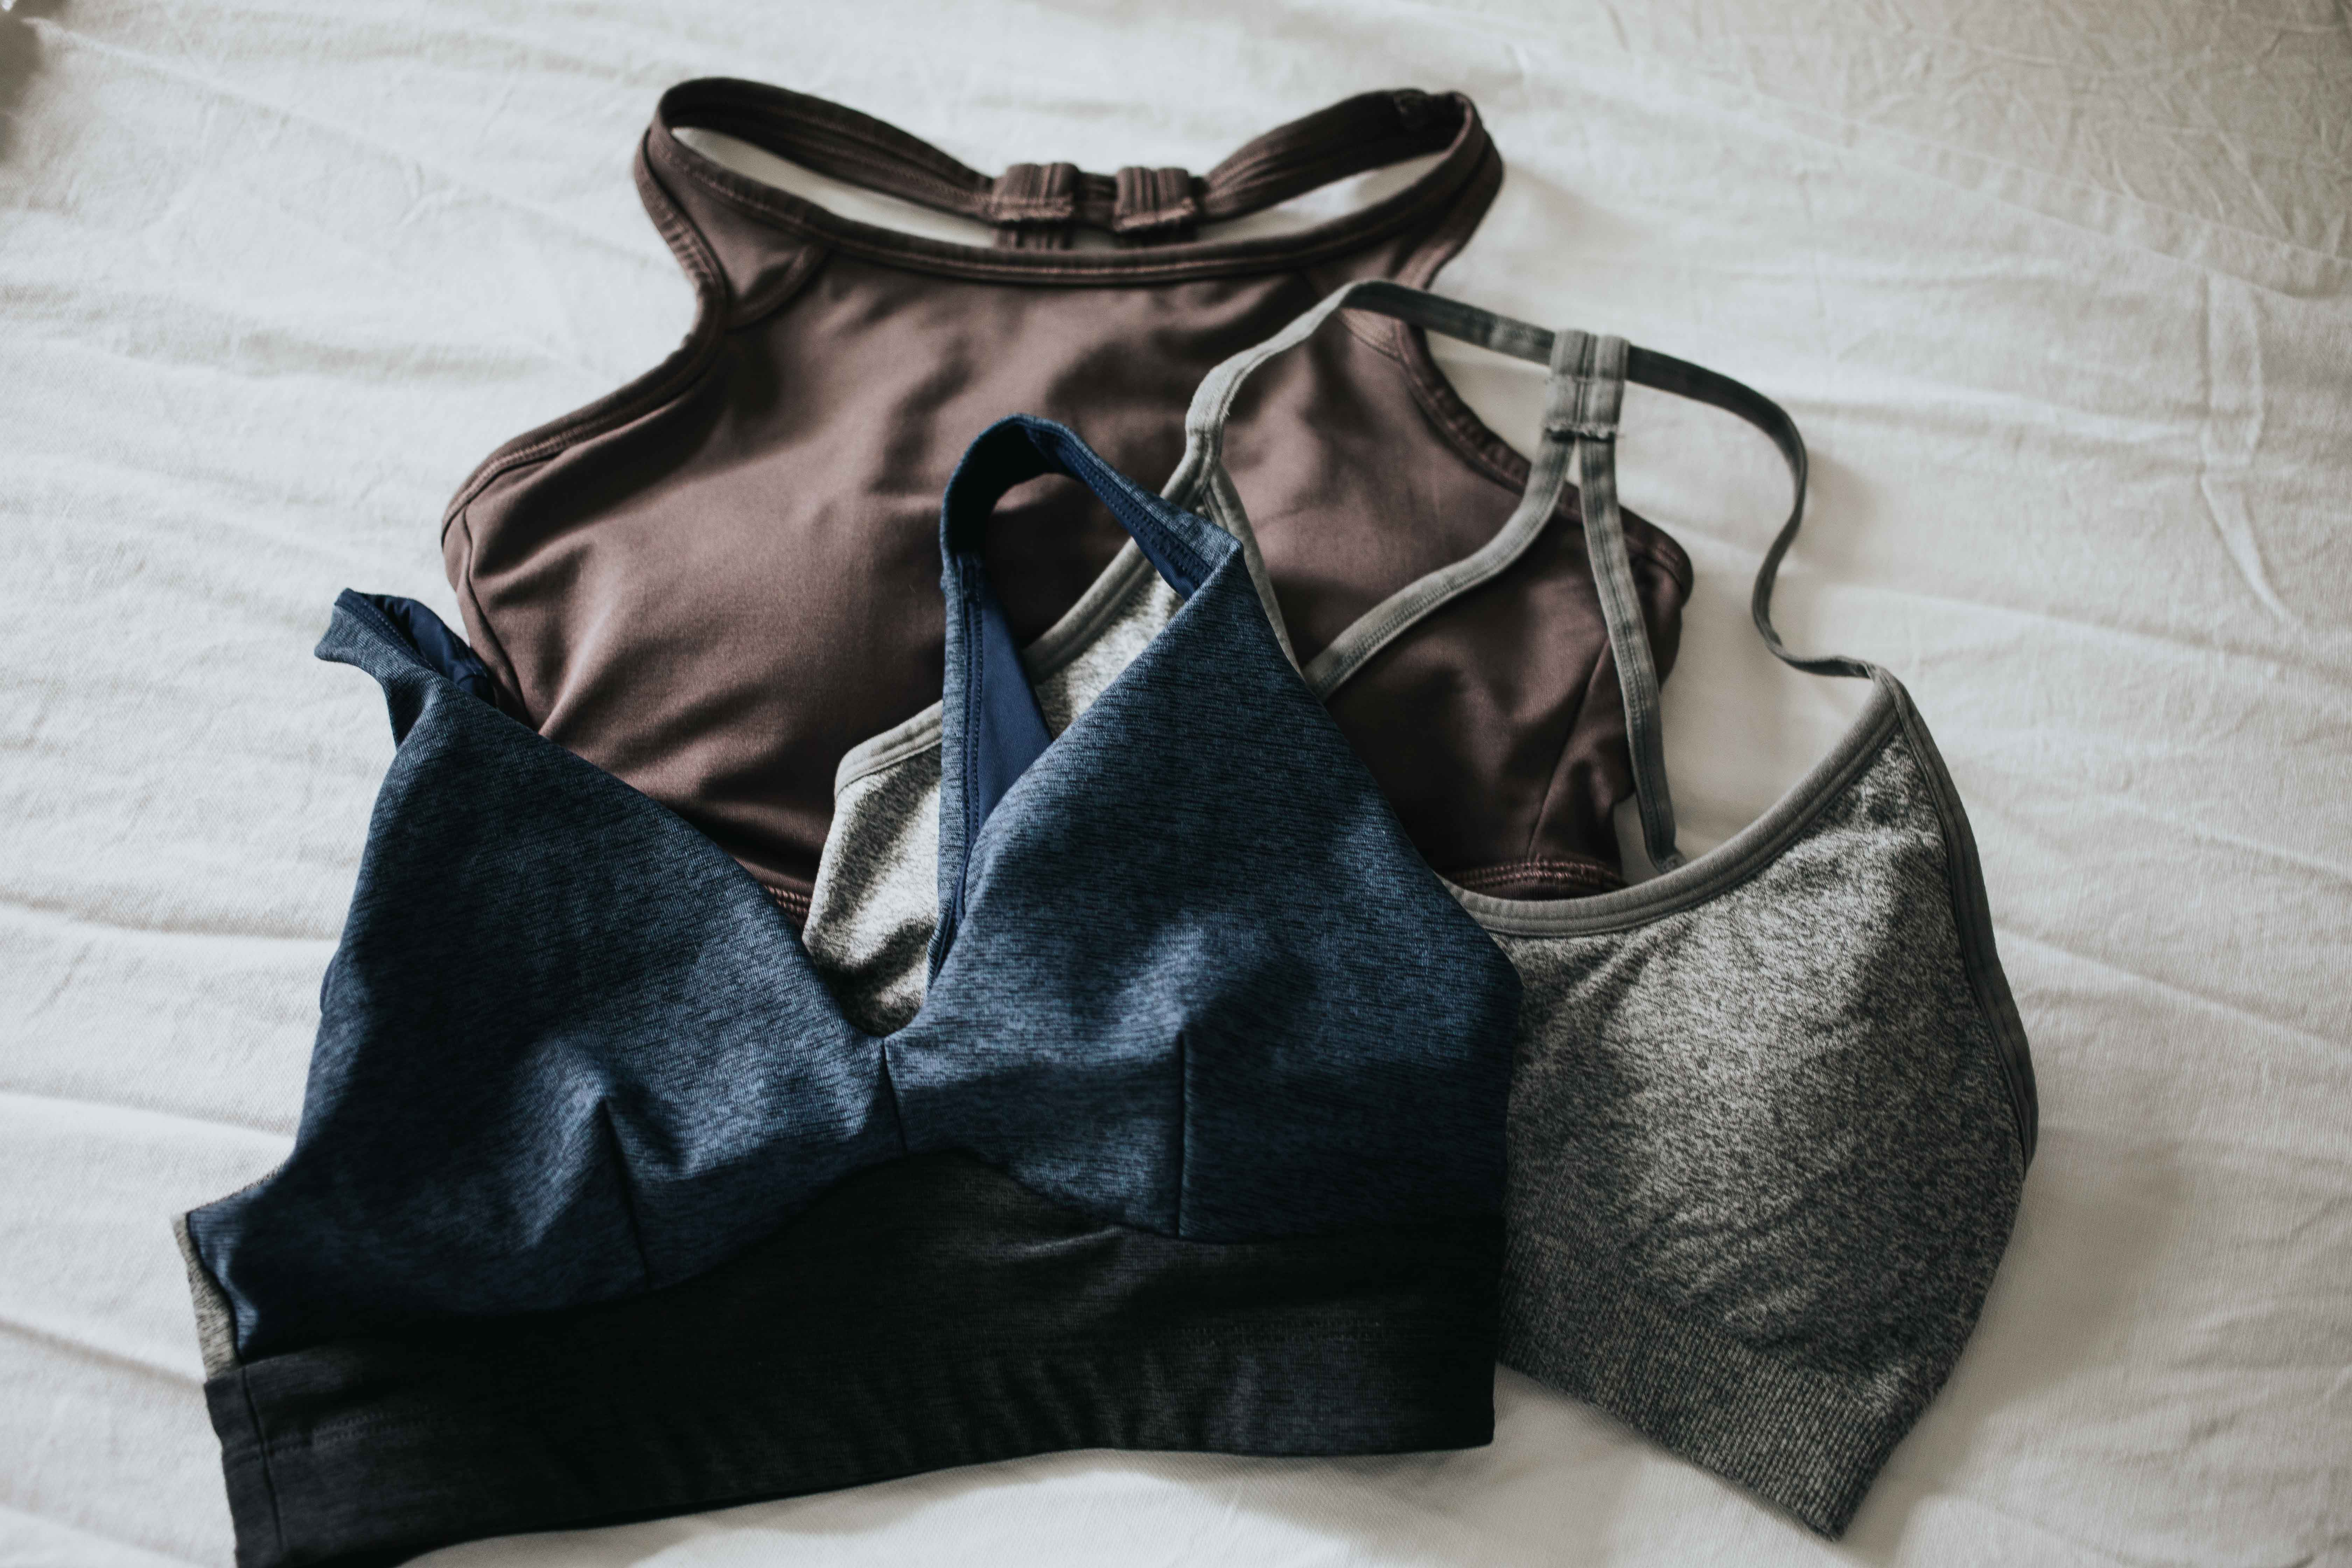 GTT: My Favorite Bras